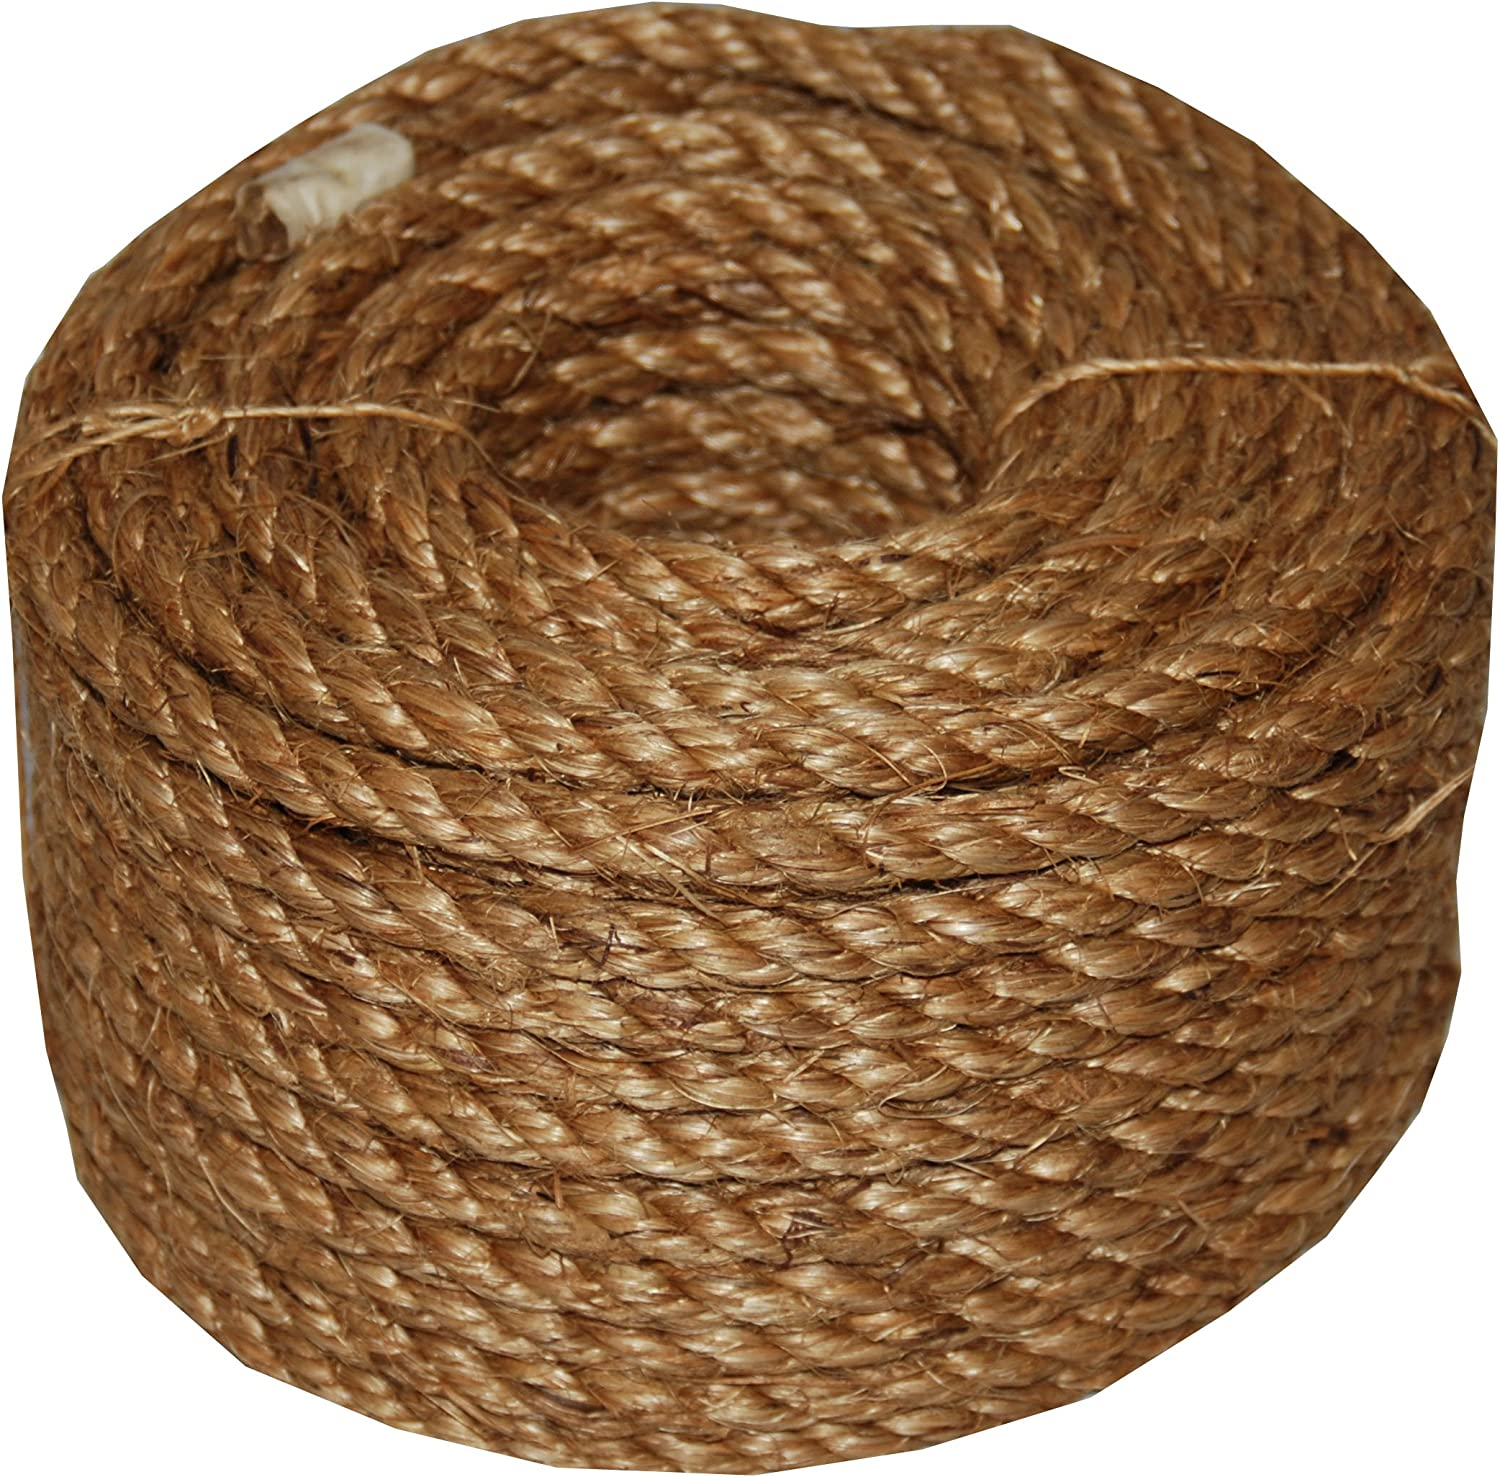 2250-Feet T.W Evans Cordage 07-200 20 Poly Cotton Twine with 2.5-Pound Cone